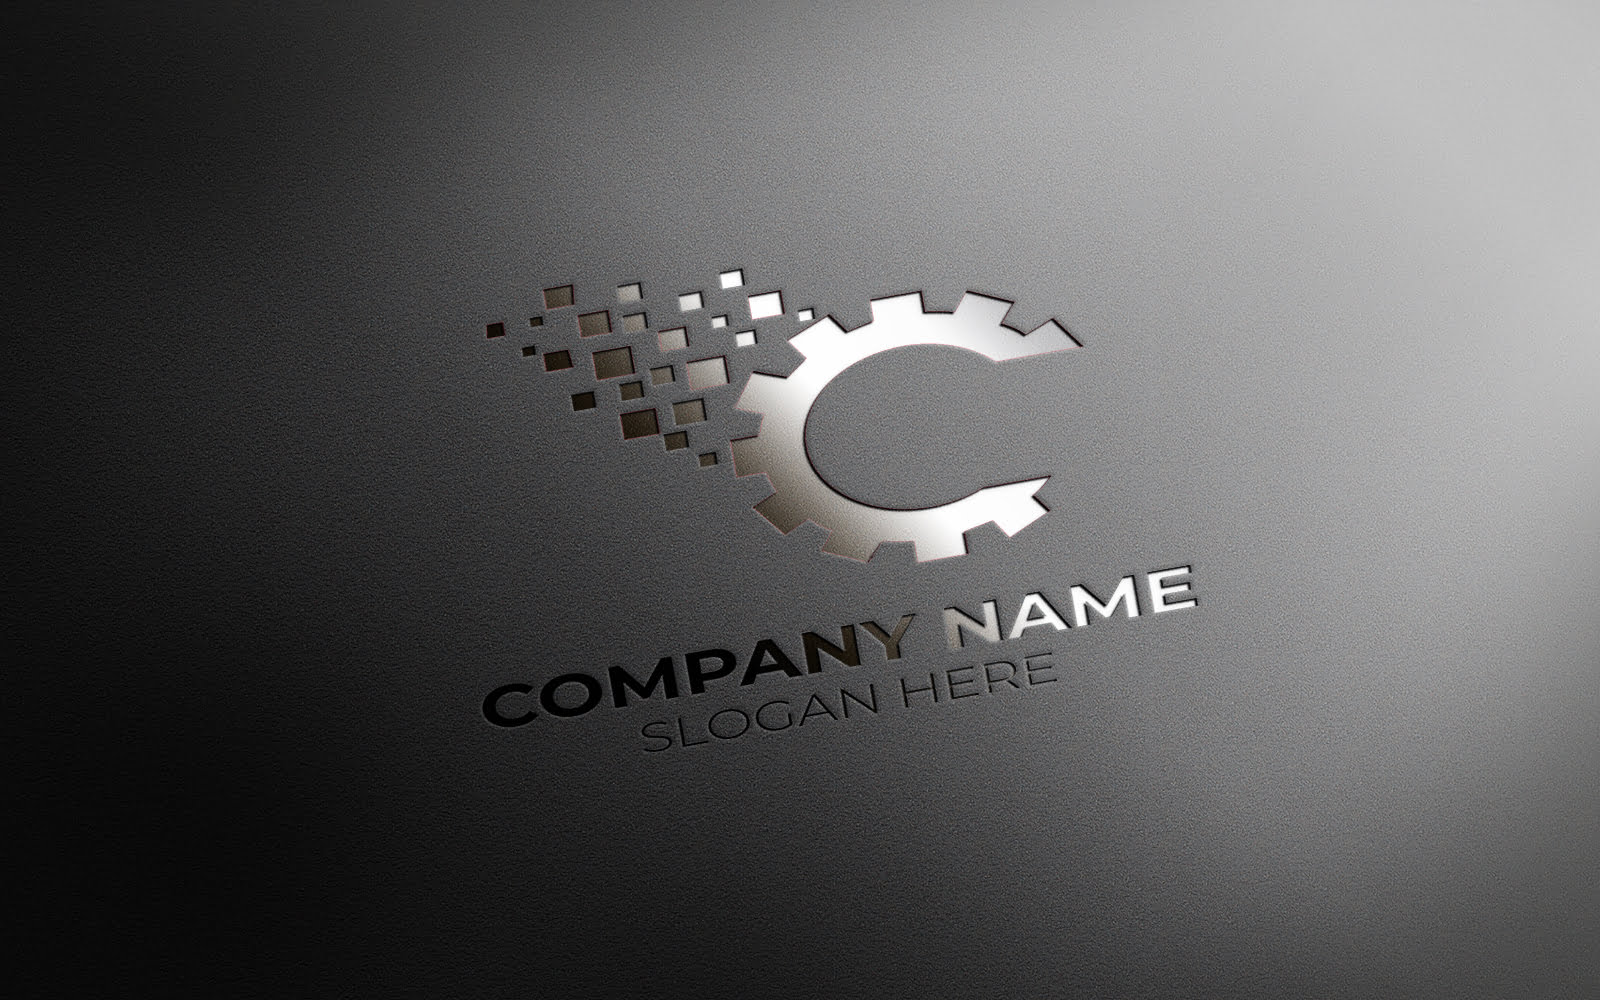 LUXURY REPAIR LOGO FOR YOUR BUSINESS